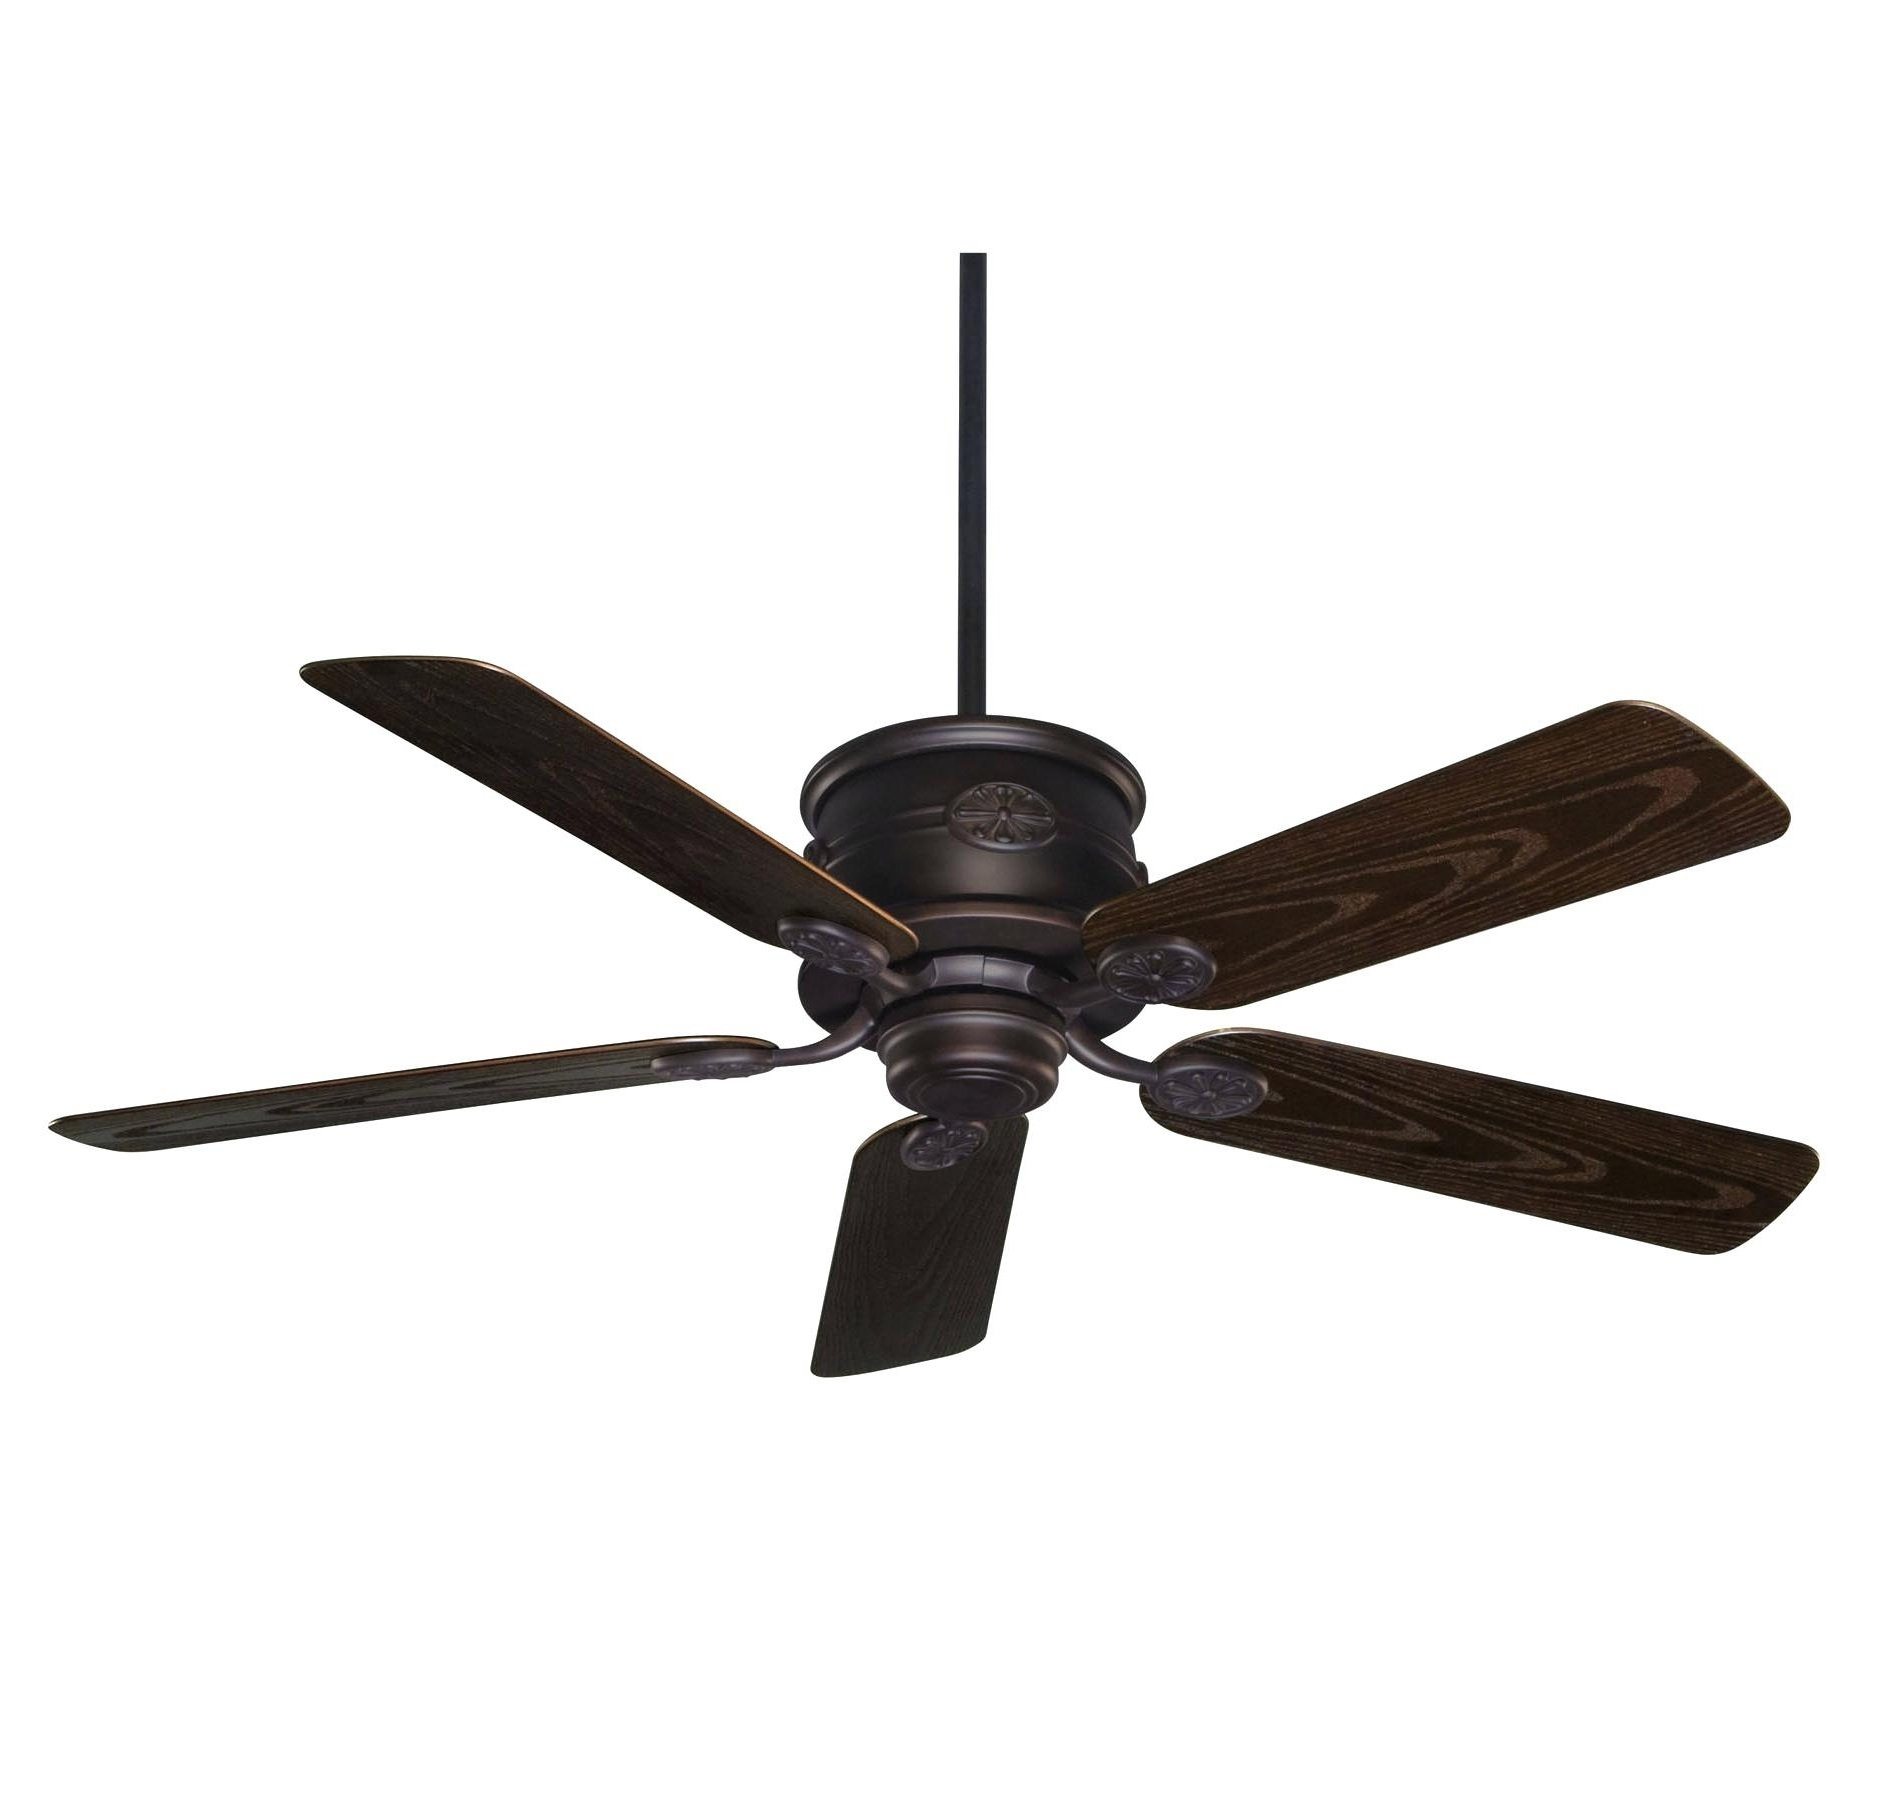 Famous Wayfair Ceiling Fans S Fan Lights With Remote Hugger For Wayfair Outdoor Ceiling Fans With Lights (View 9 of 20)